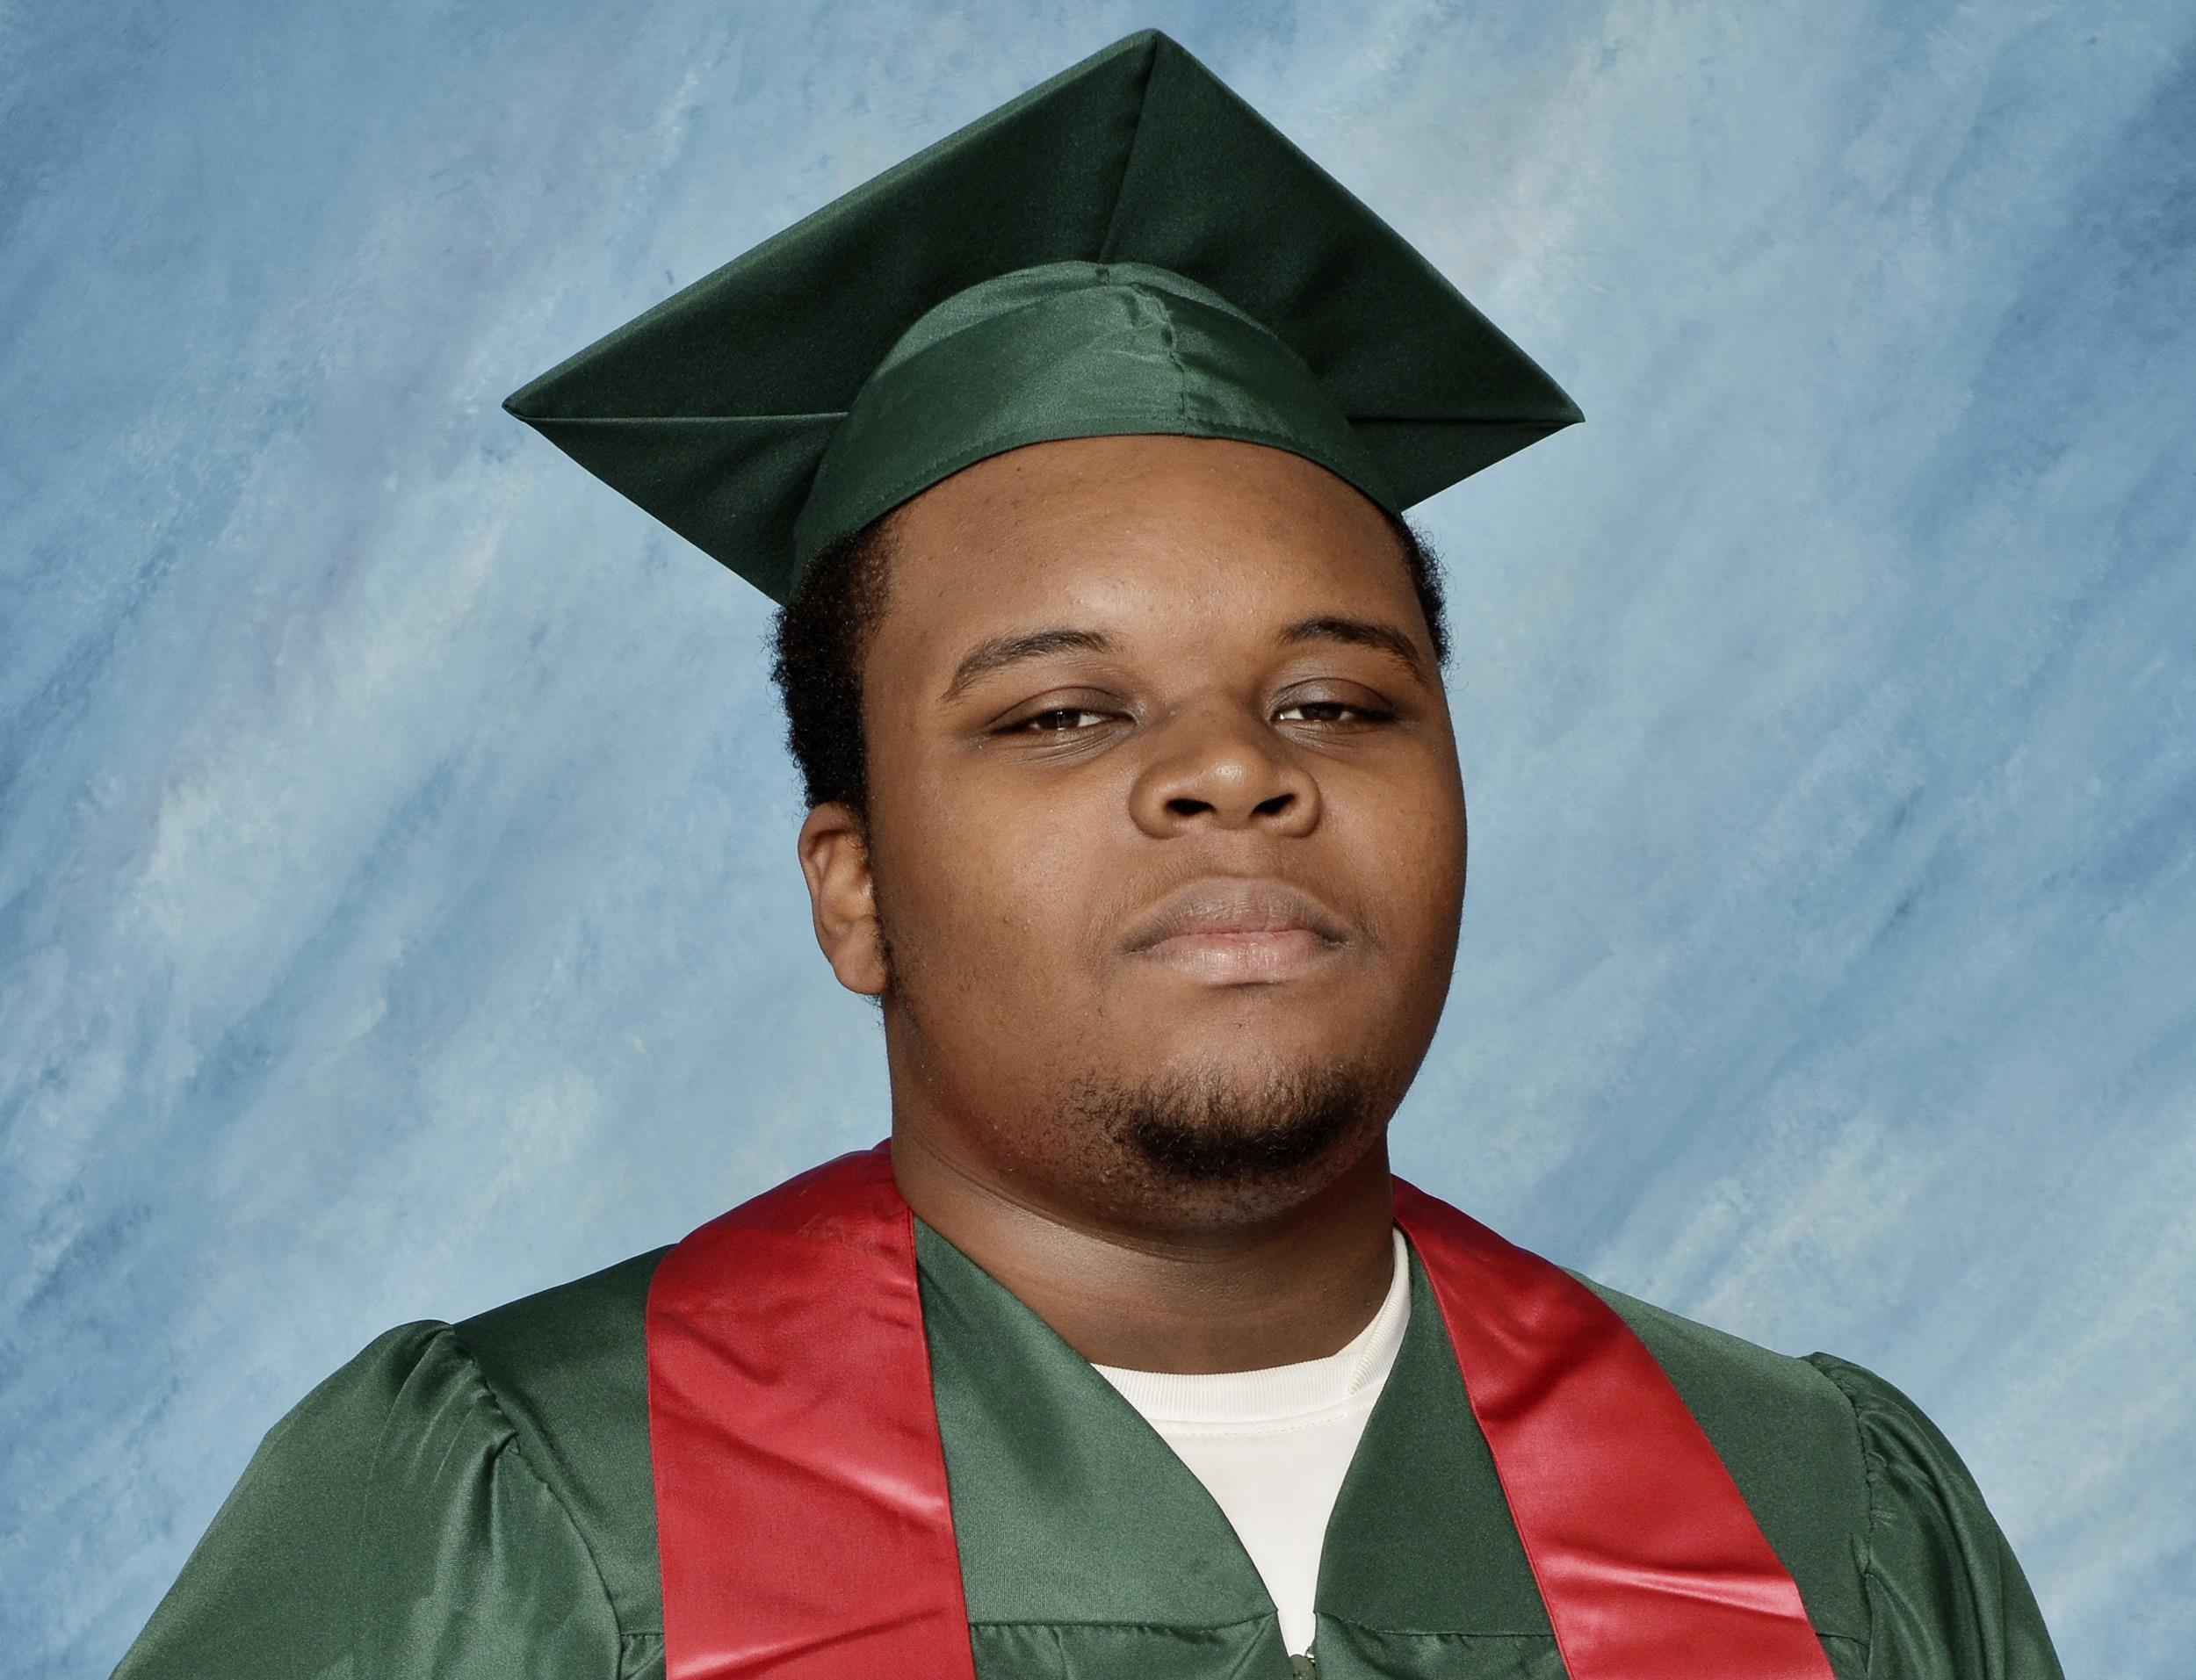 Image: Michael Brown poses for a photo in his cap and gown taken in March - 140824-michael-brown-4p_e151133bf82ab2e33cf09a4fe0ebb405